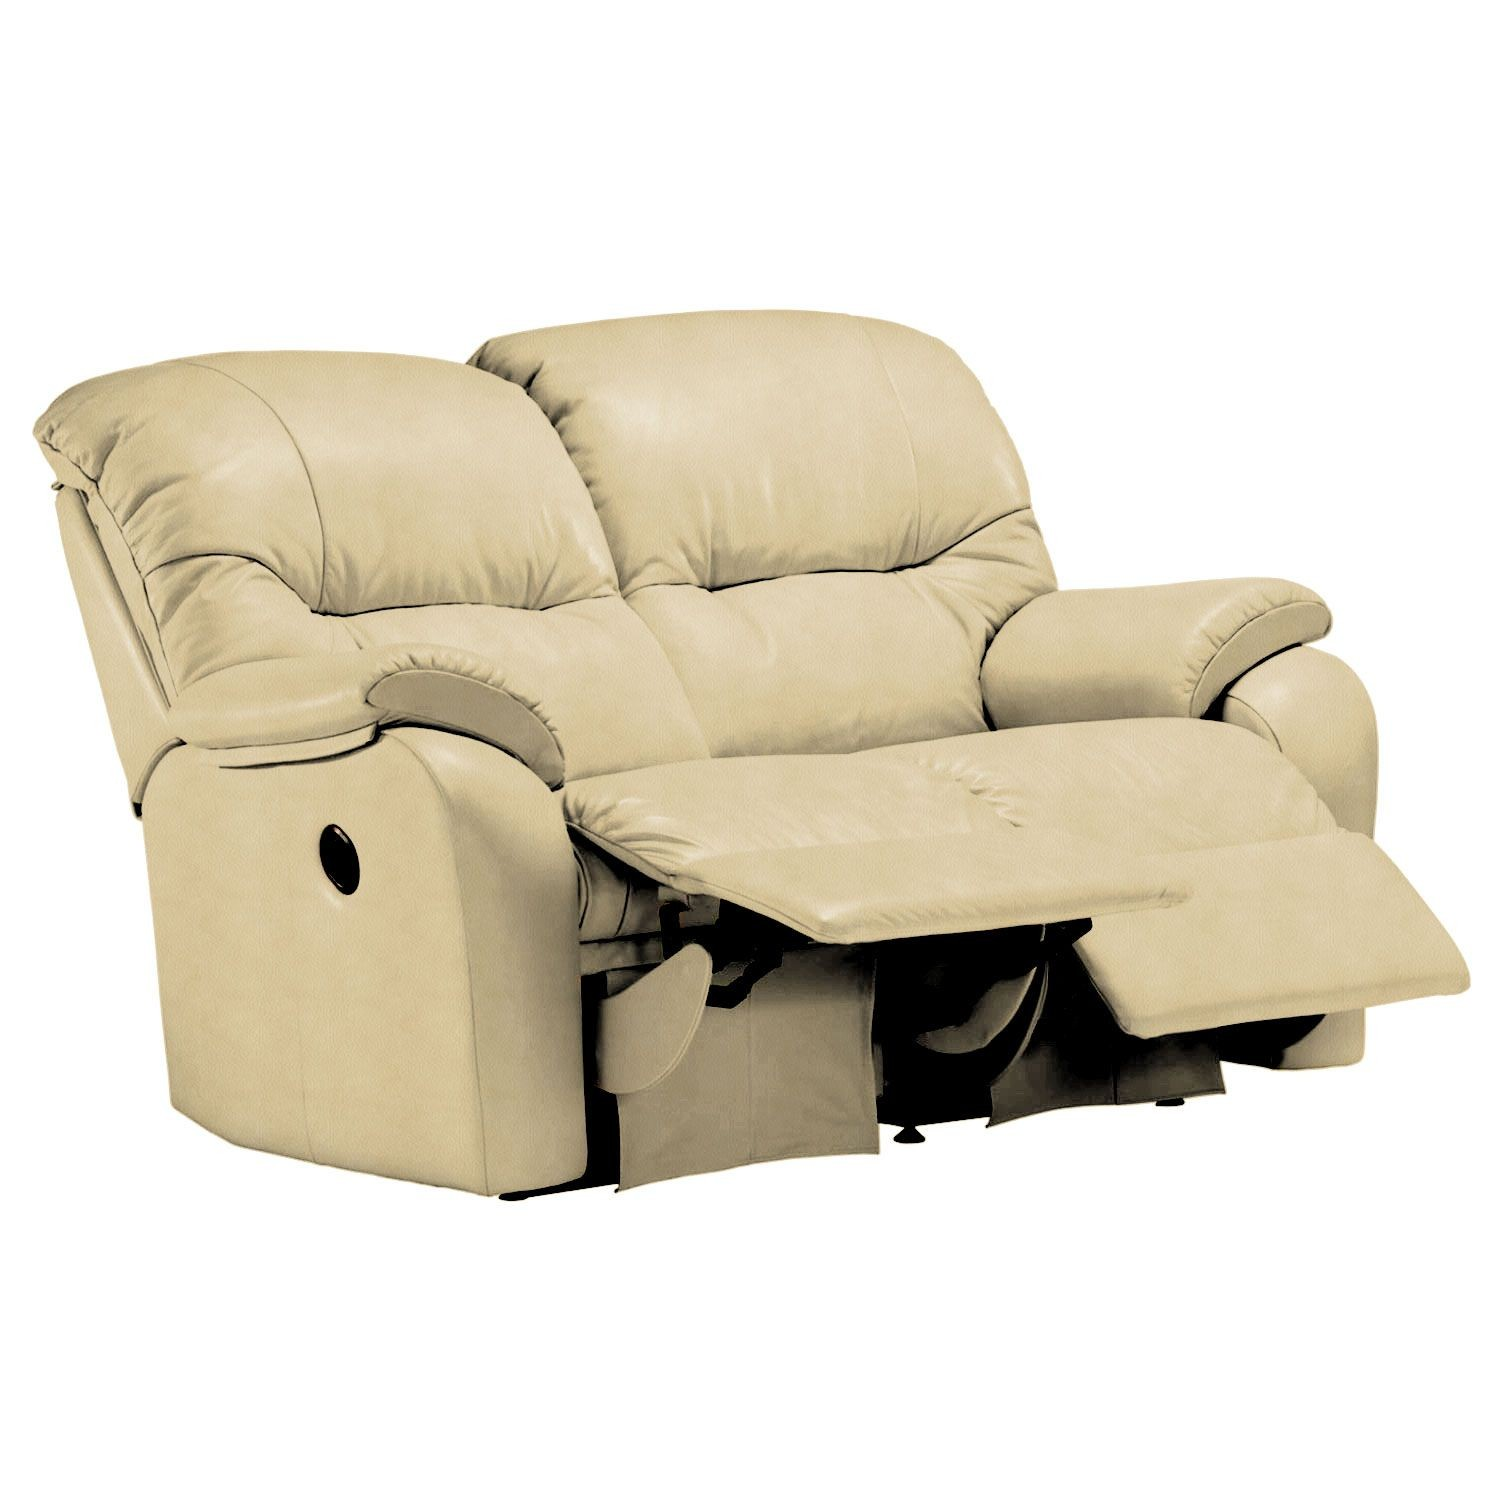 G Plan Mistral Two Seater Double Manual Recliner Leather Sofa